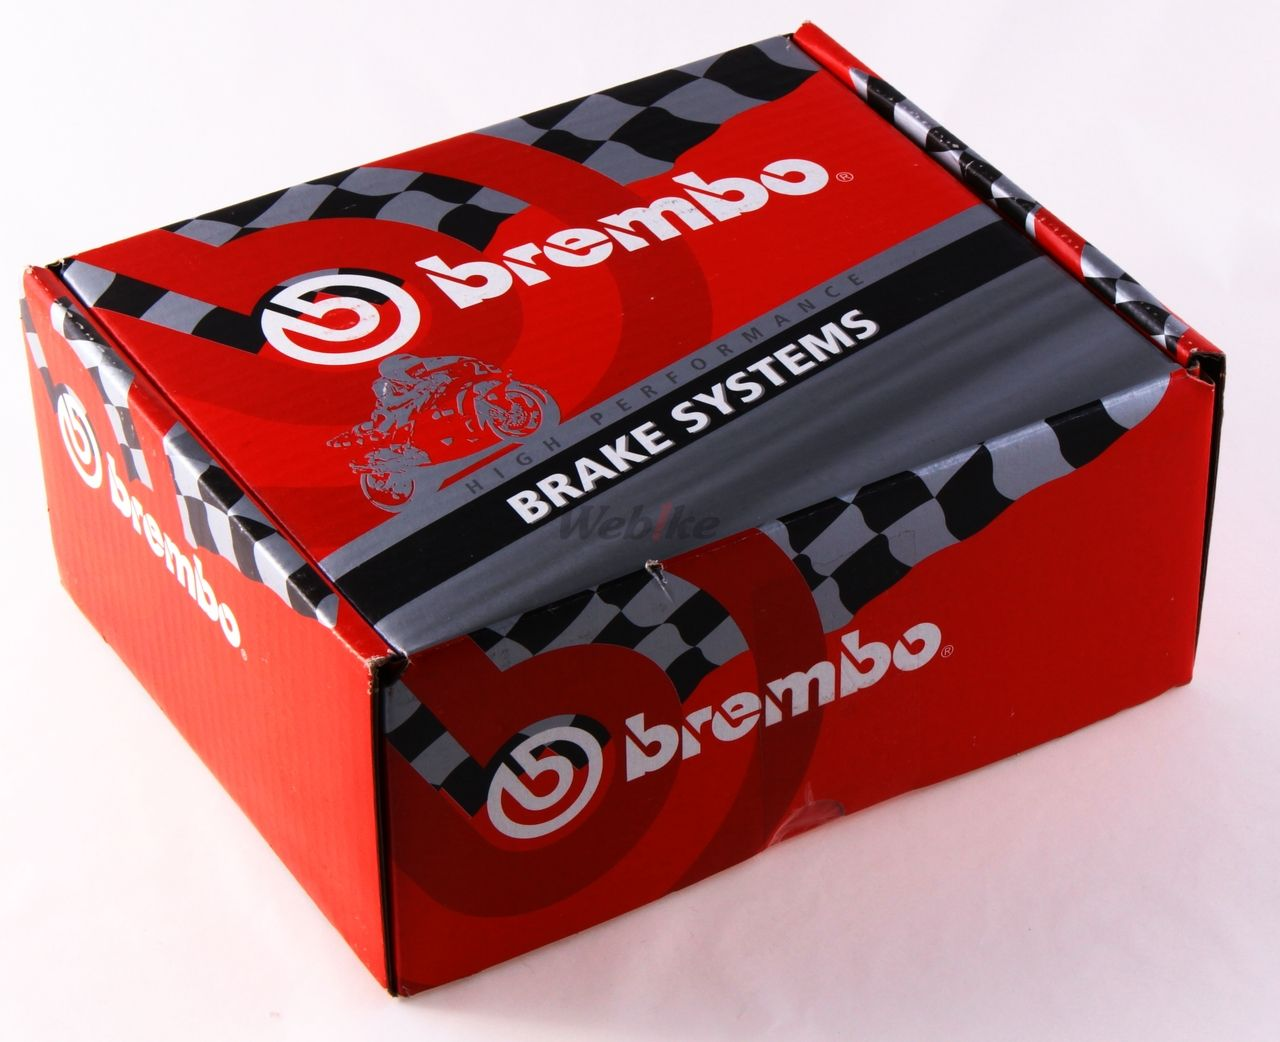 brembo : Monoblock Radial Mount Brake Caliper P4 34/34 100mm